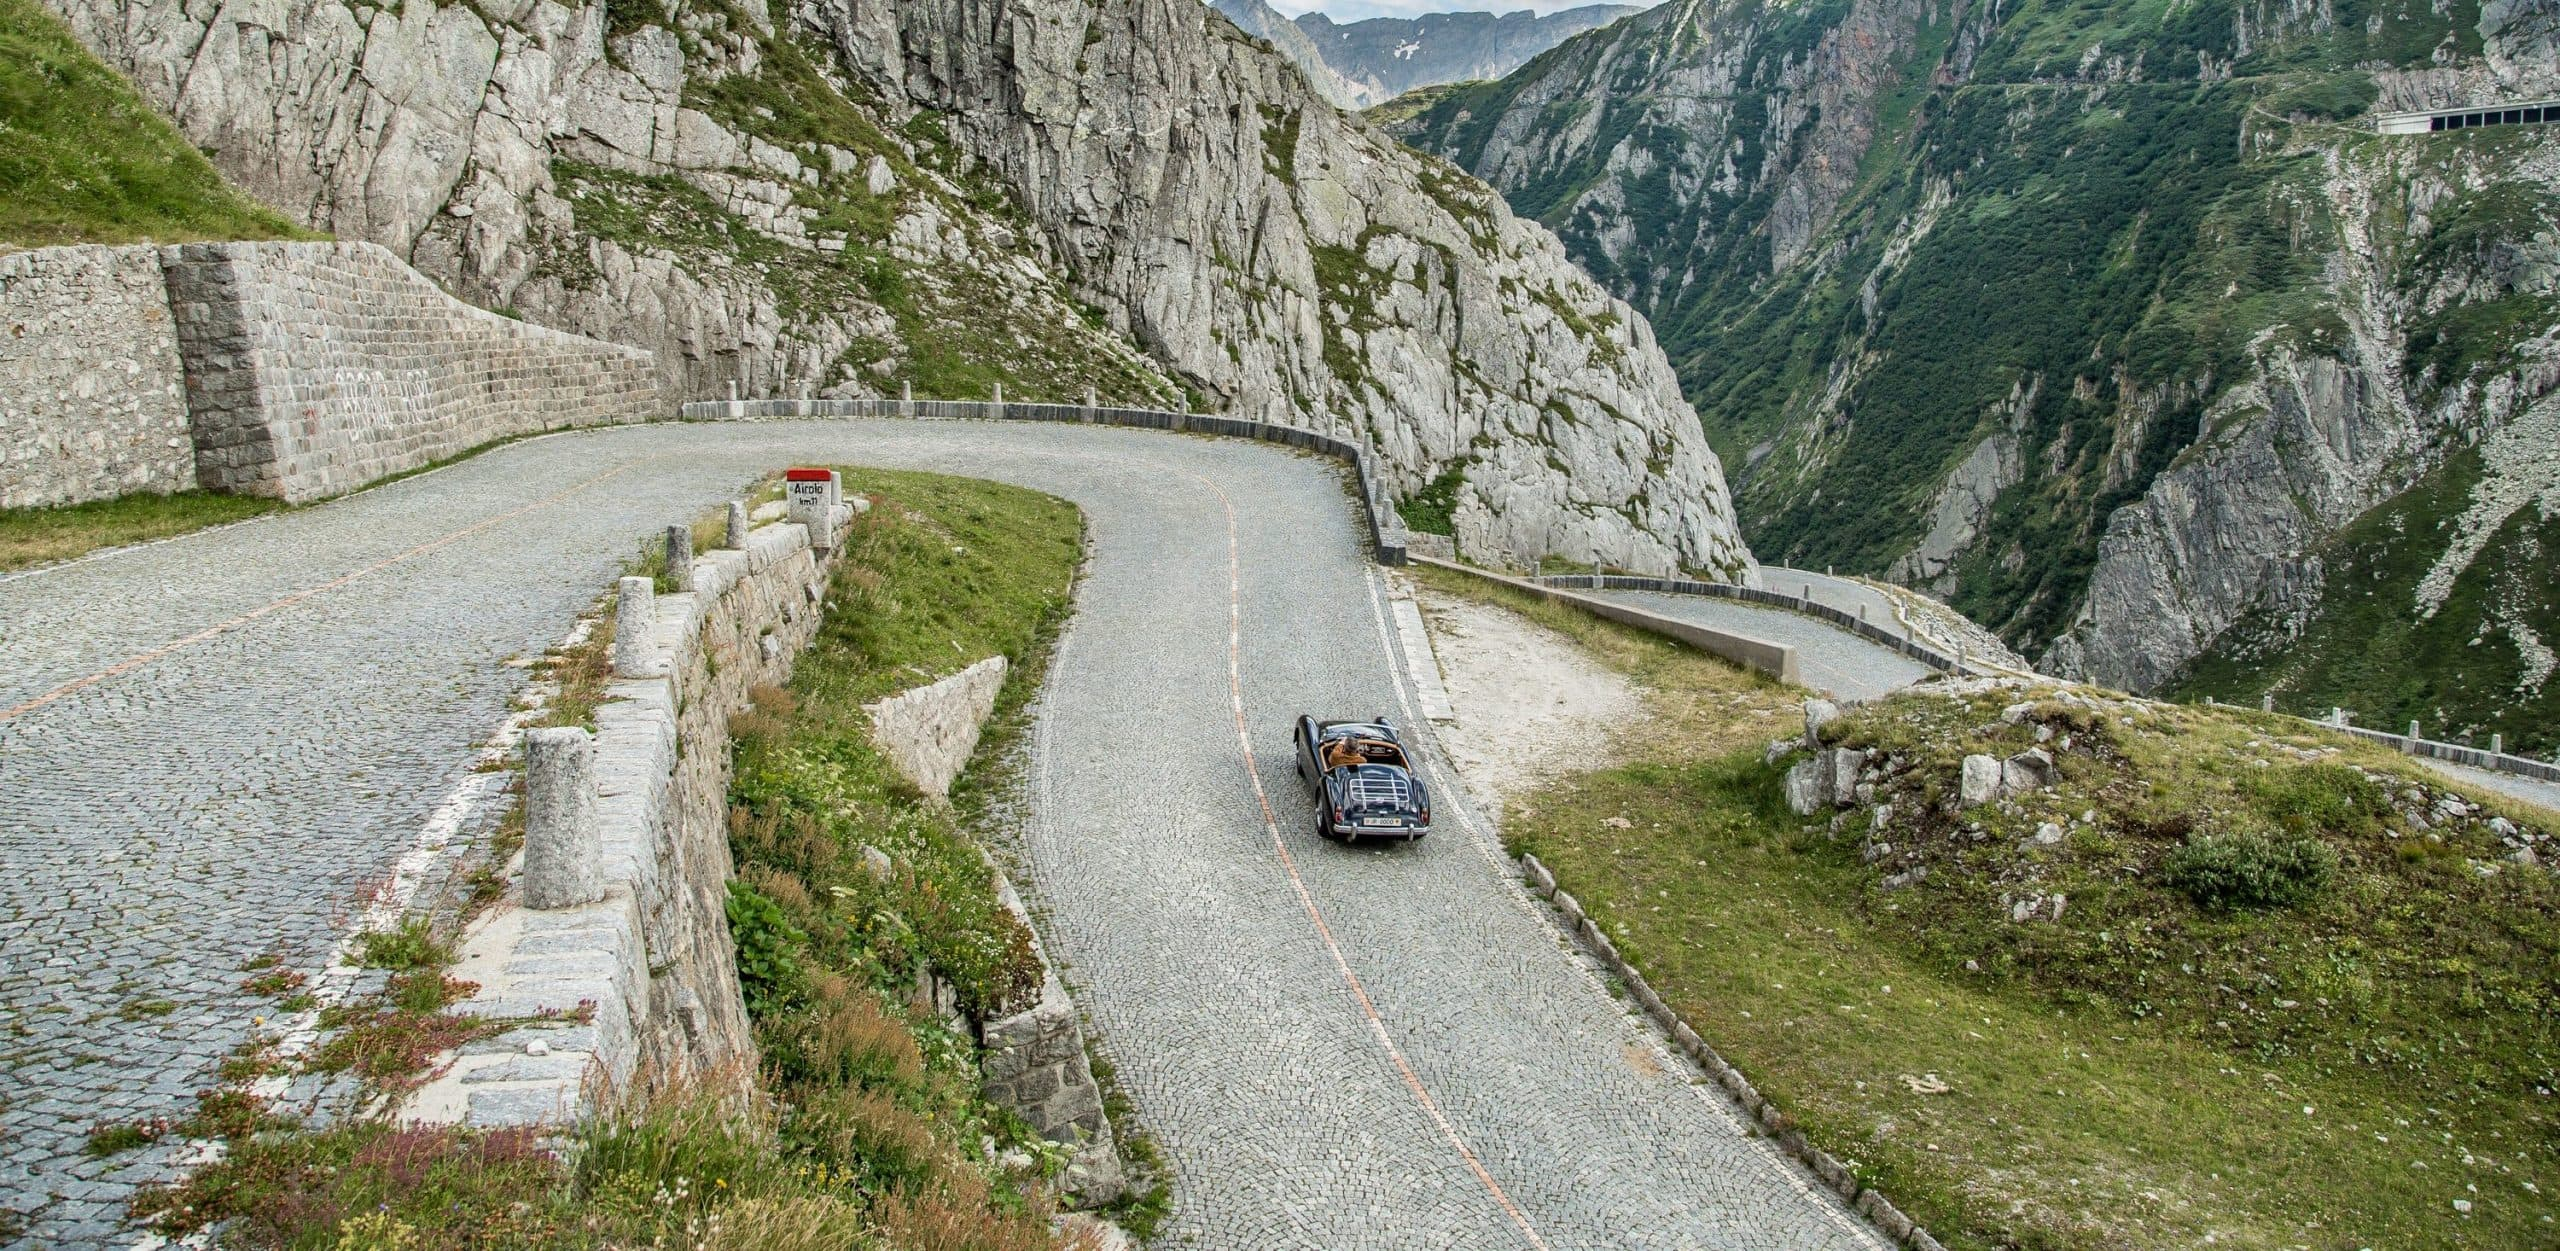 Met de auto over de Gotthard pass in zwitserland